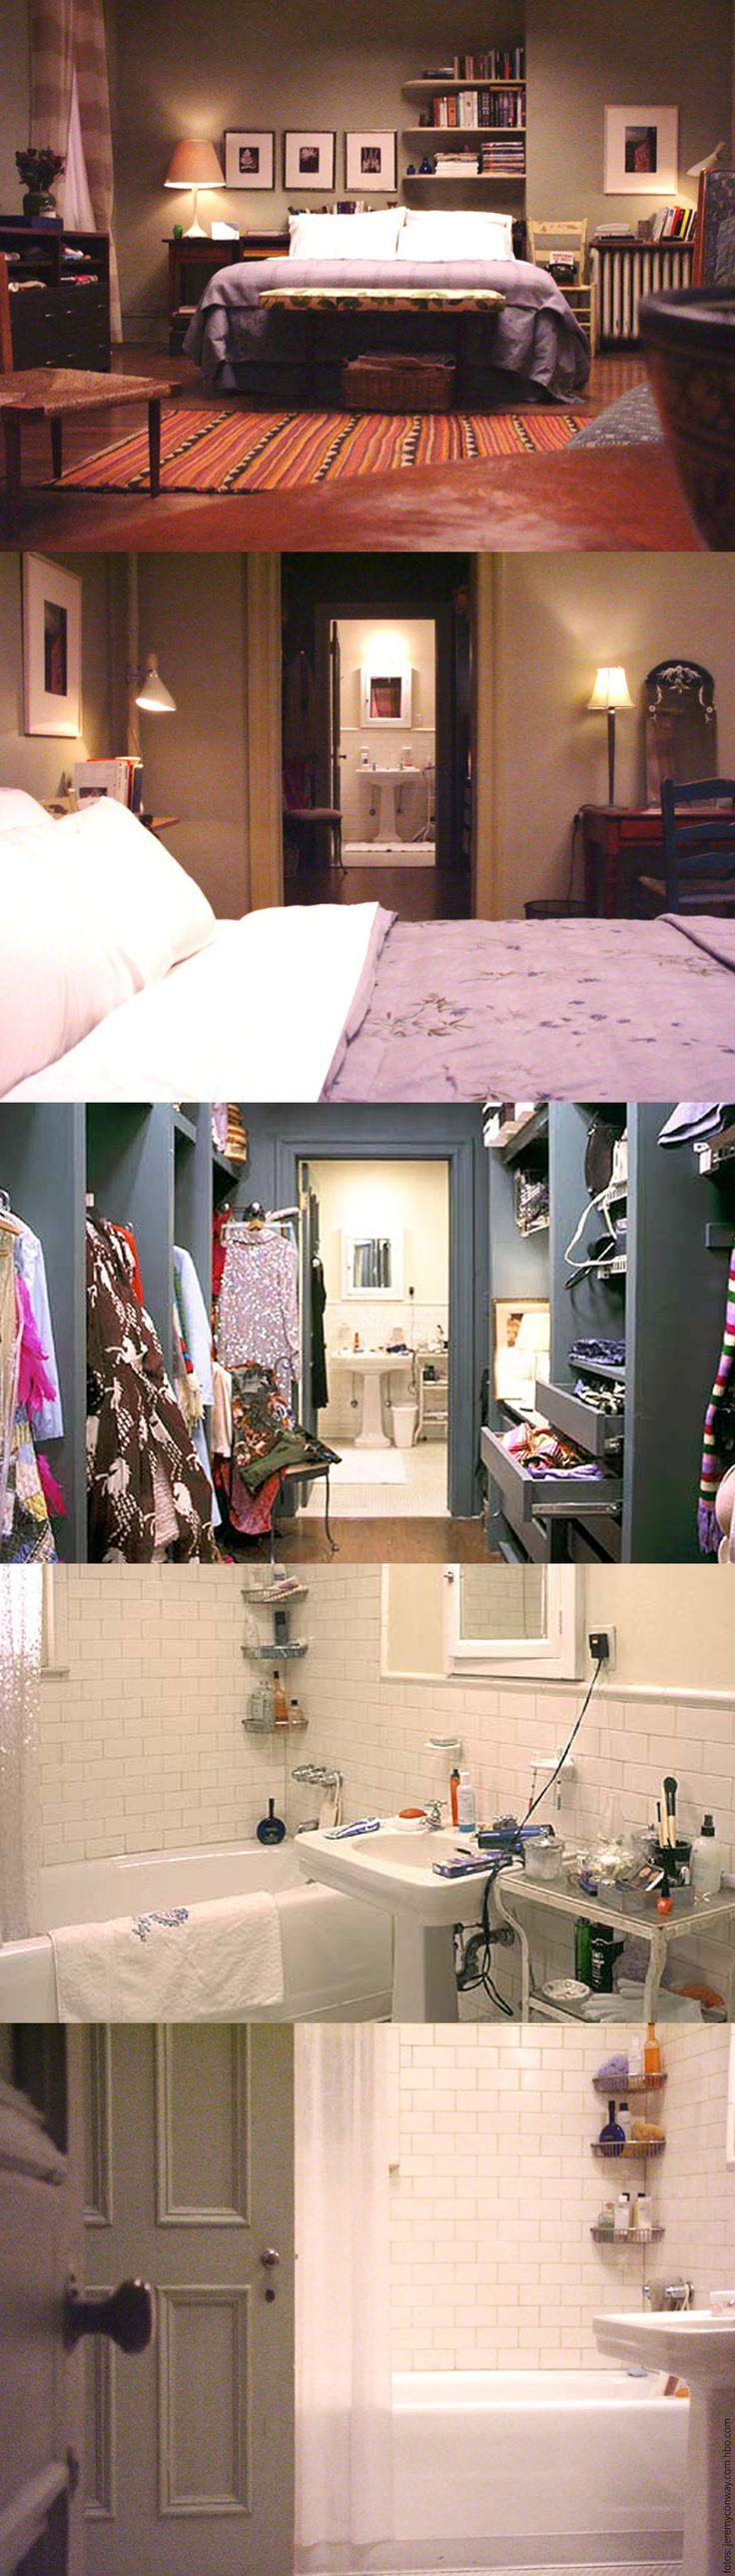 IN DA HOUSE: O APARTAMENTO DE CARRIE BRADSHAW                                                                                                                                                                                 More                                                                                                                                                                                 More